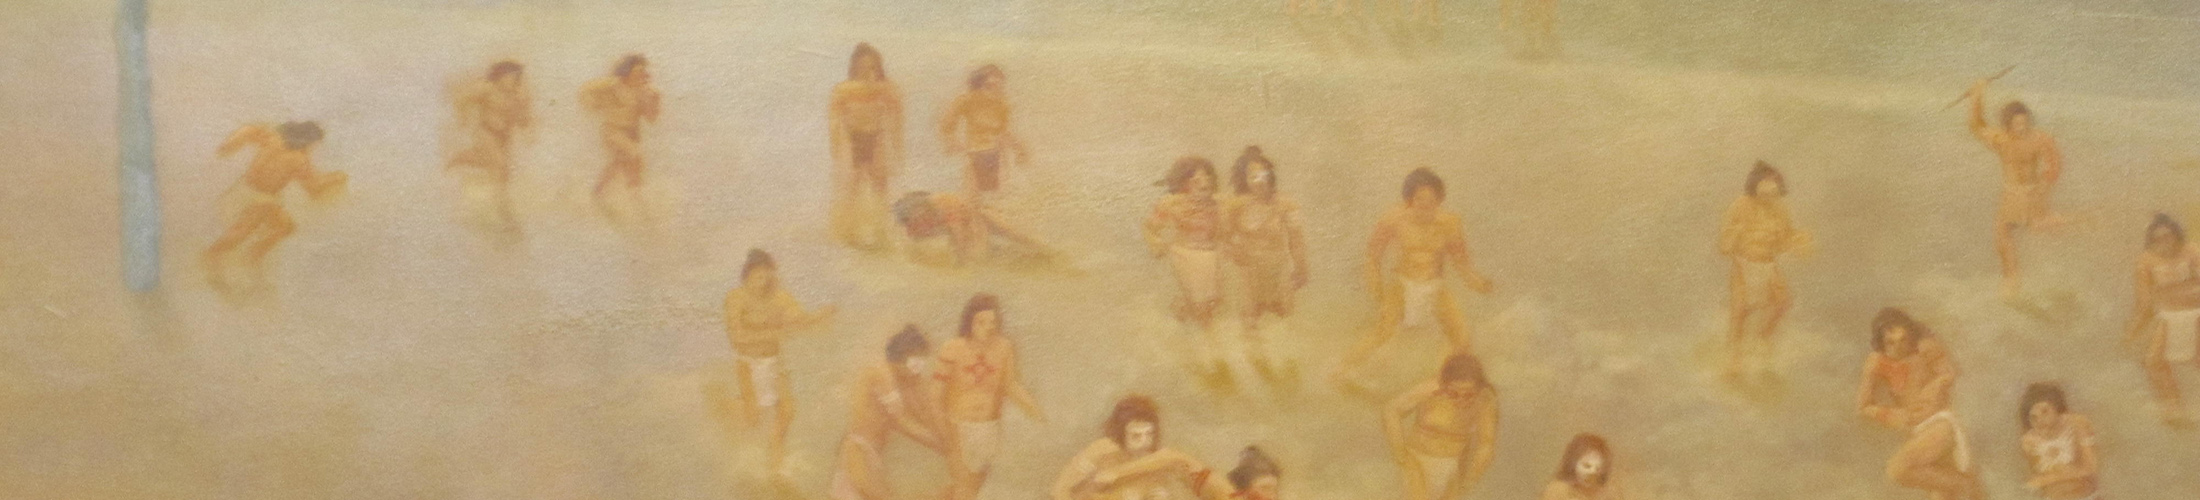 Painting of Indians.